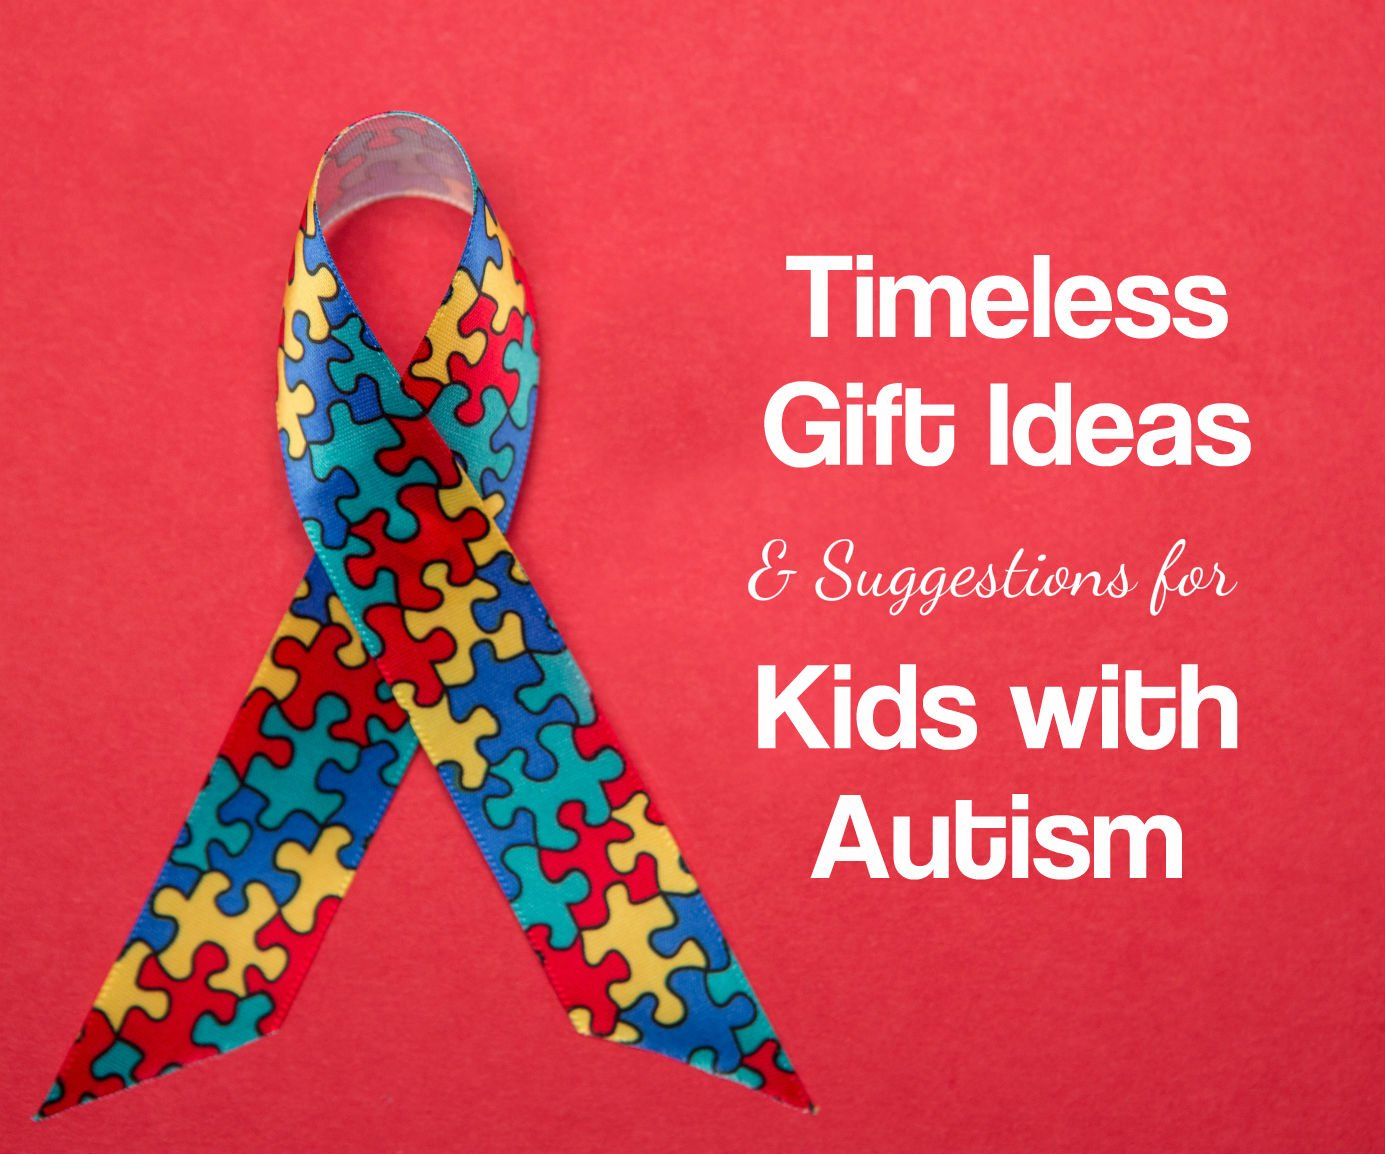 28 Timeless Gift Ideas for Kids with Autism